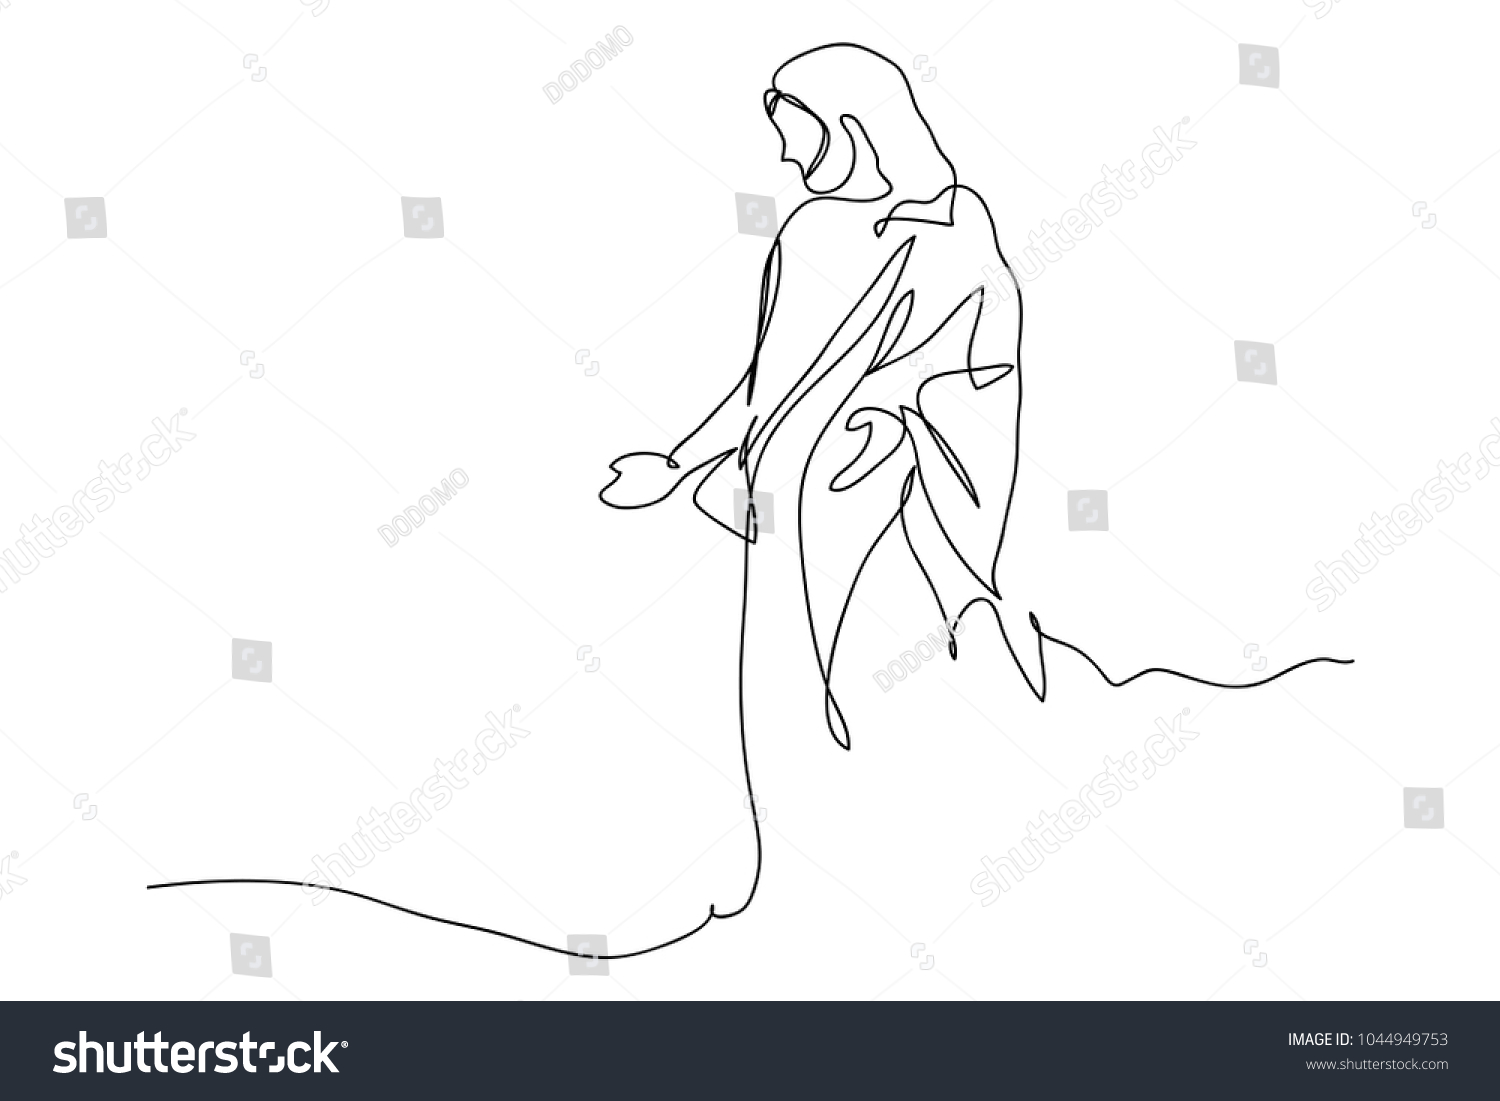 Beautiful Continuous Line Drawing Of Jesus Christ , Linear Style And Hand Drawn  Vector Illustrations